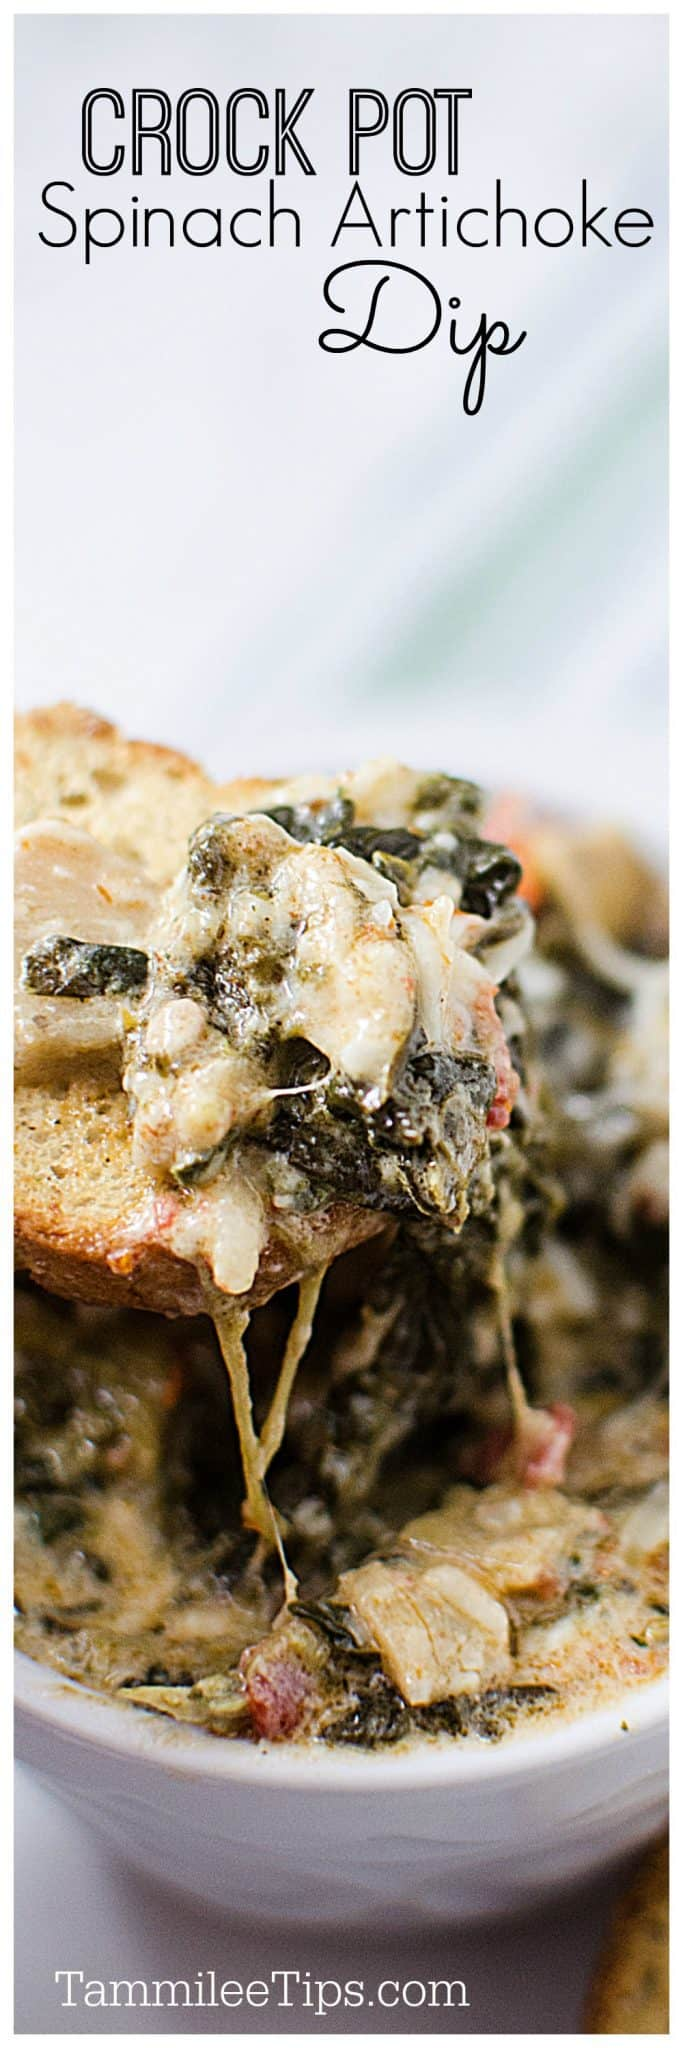 Slow Cooker Crock Pot Spinach Artichoke Dip with sun-dried tomatoes and artichokes. Perfect for holiday parties, football super bowl parties and more! So easy to make #SuperBowl #holidayparties #parties #dip #slowcooker #crockpot